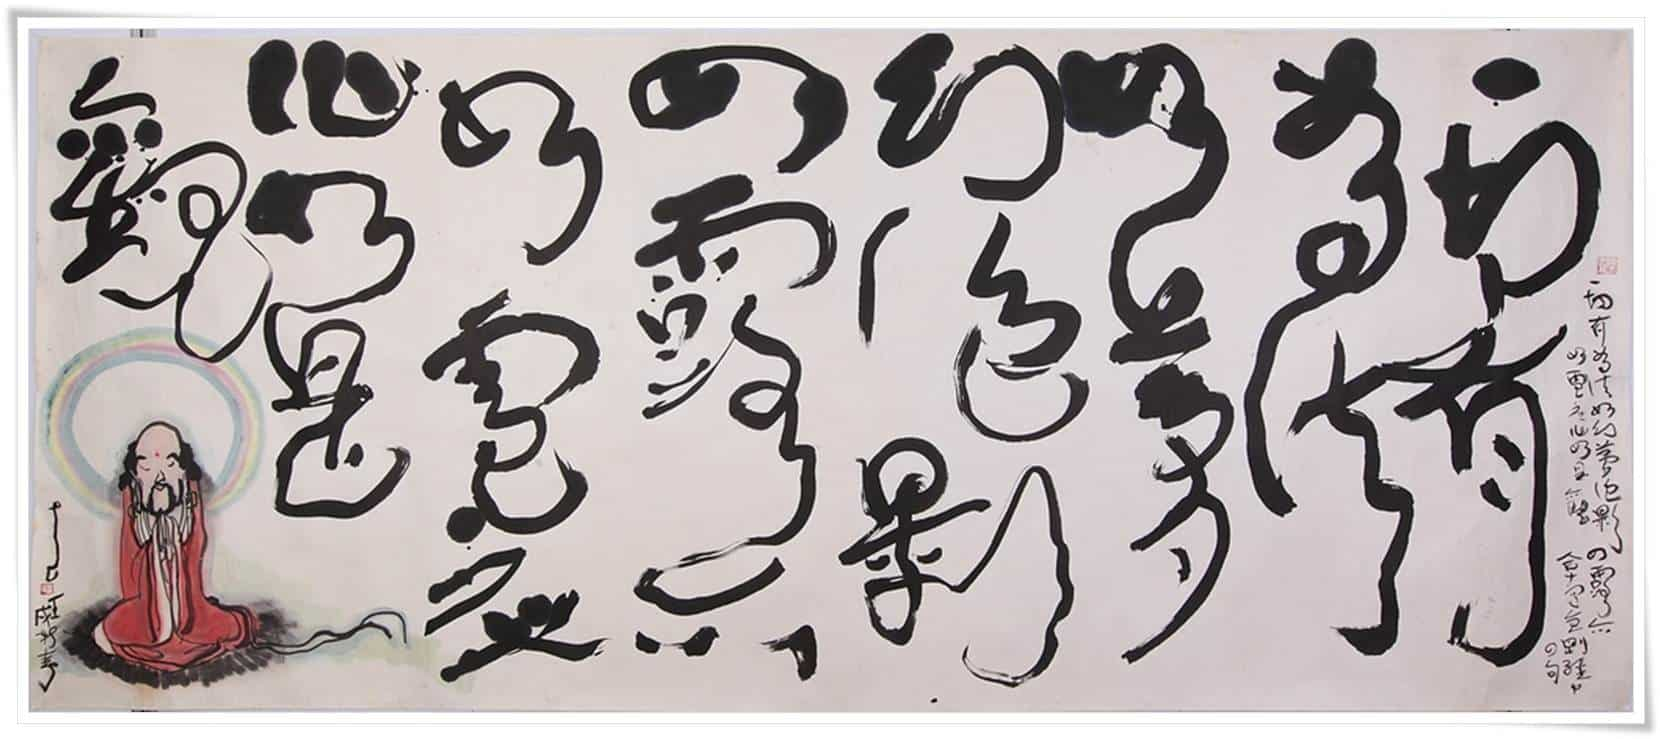 Huang Yao 's unique Chinese calligraphy – Chuyun Shu (or Rising Cloud Writing) – Part 2